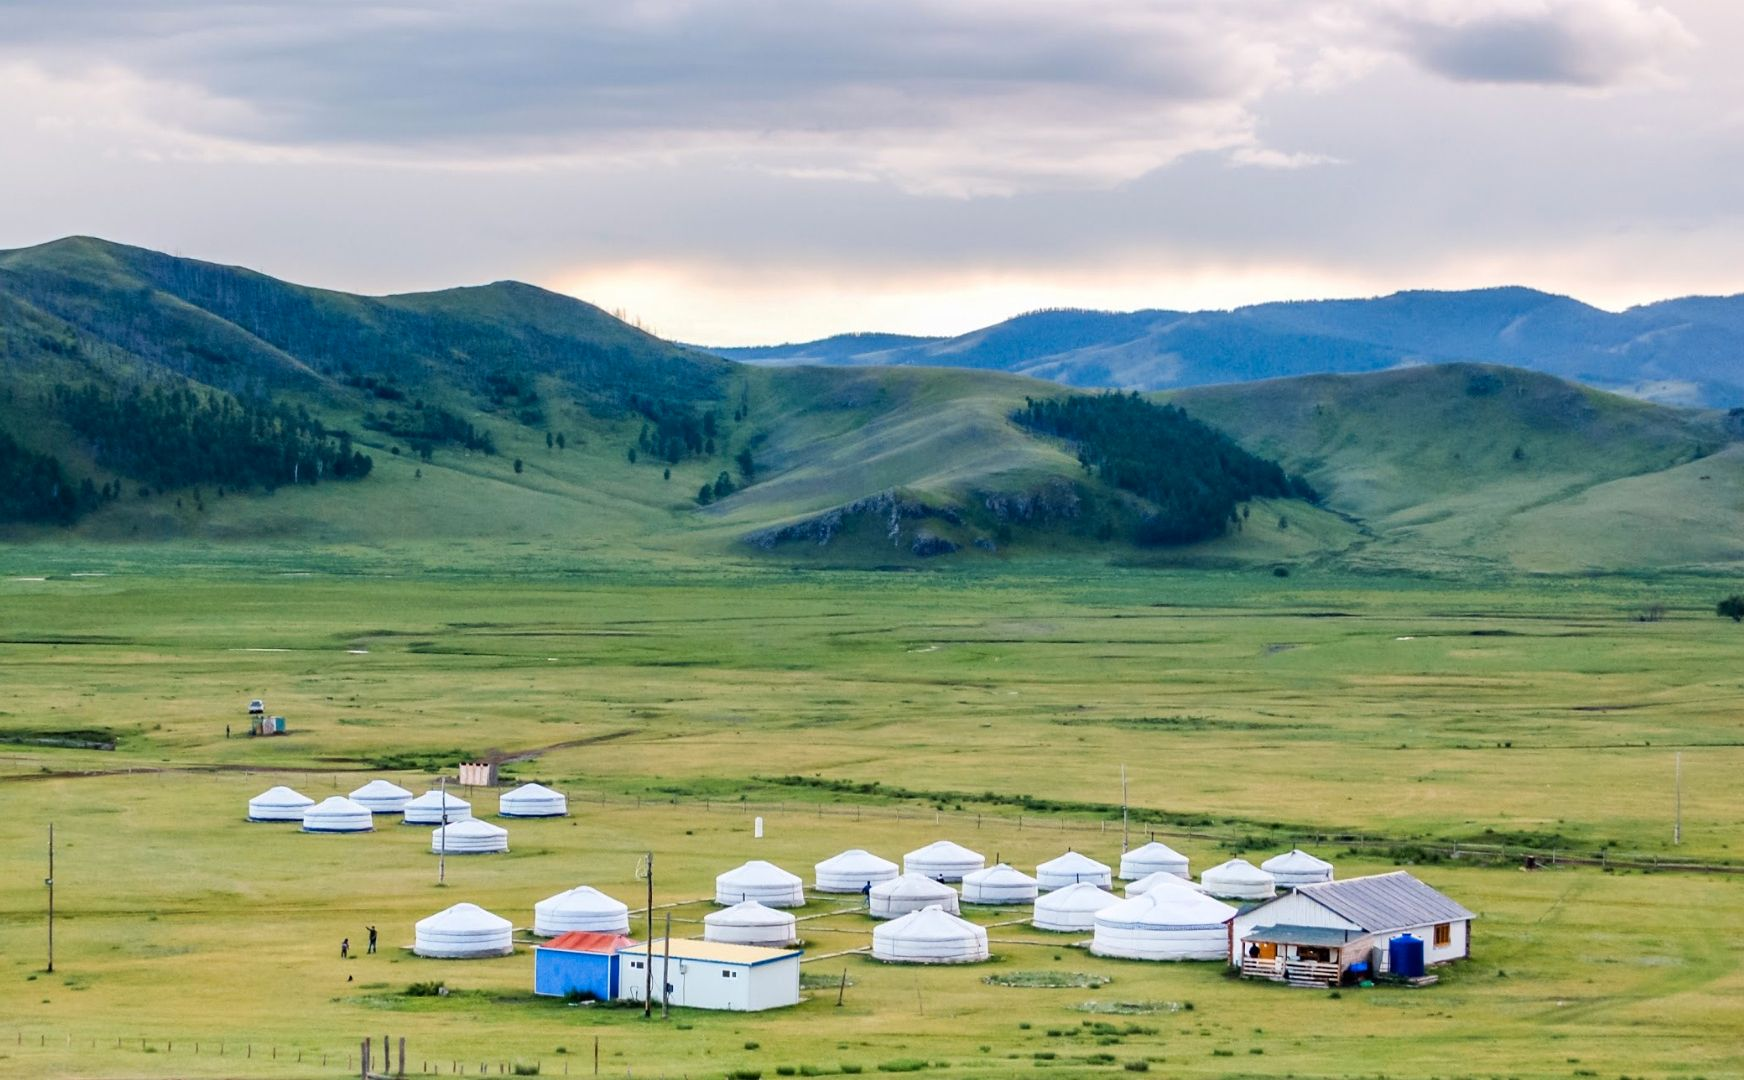 Yourte sur steppes - Mongolie ©Istock